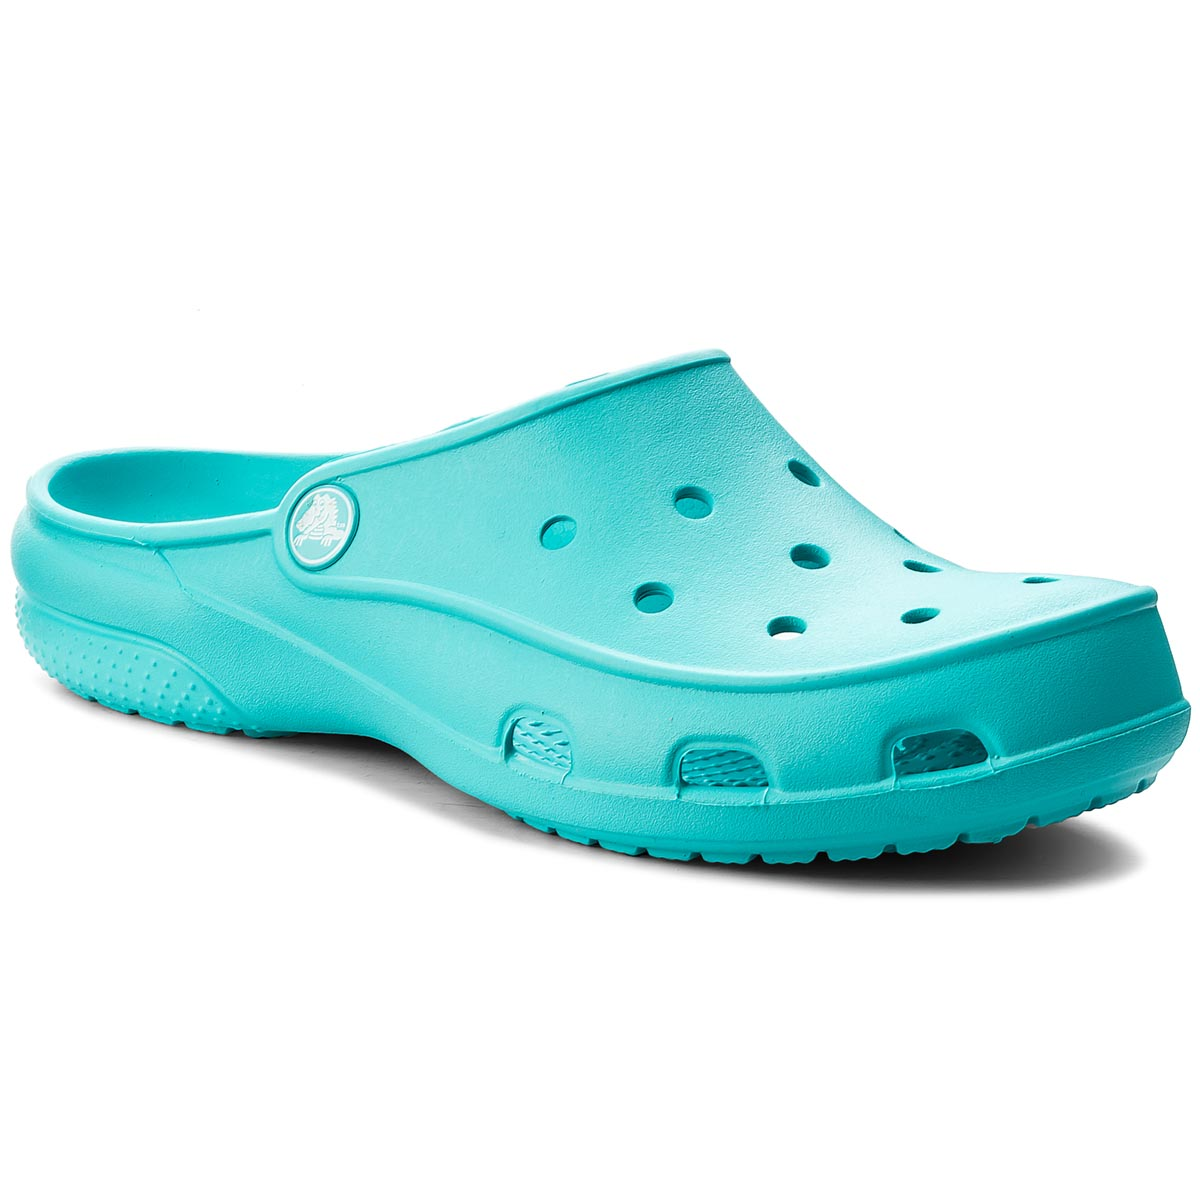 Klapki CROCS - Freesail Clog W 200861 Pool